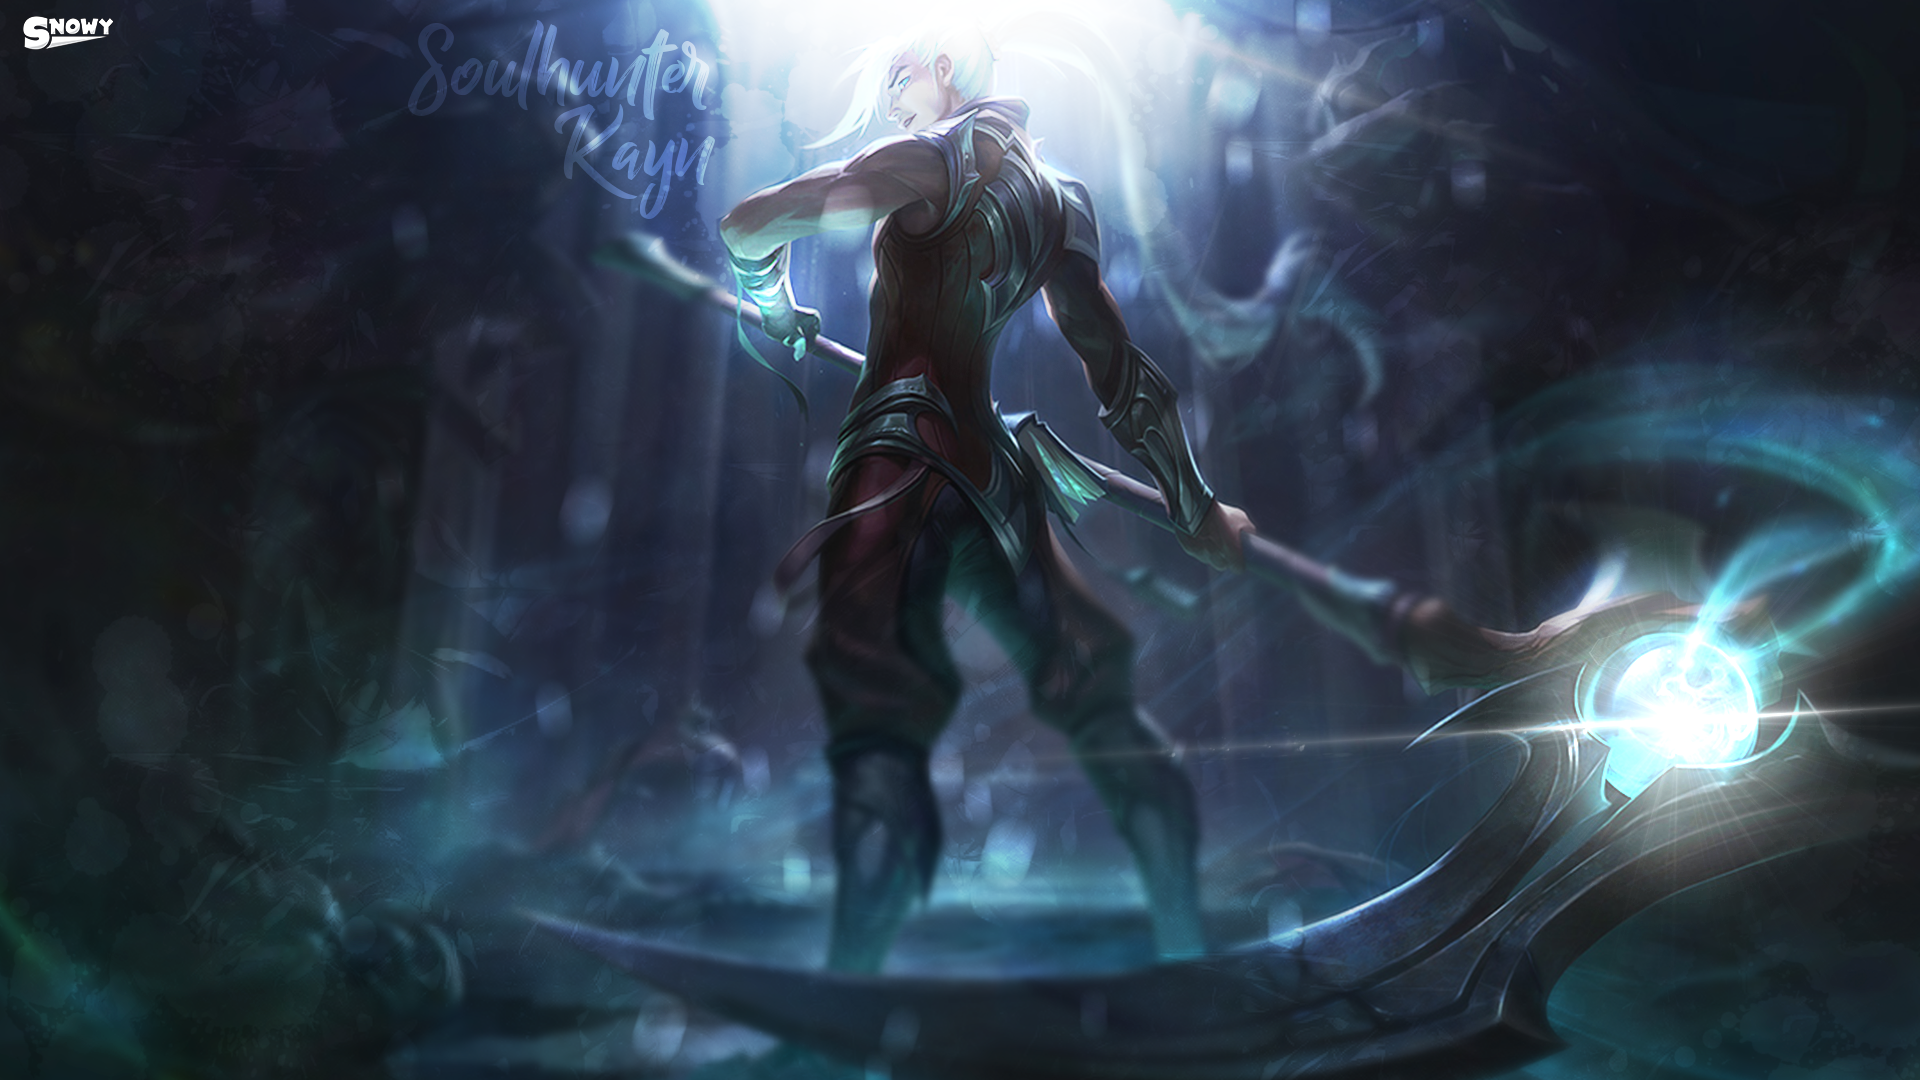 League Of Legends Soulhunter Kayn By Massi001 On Deviantart